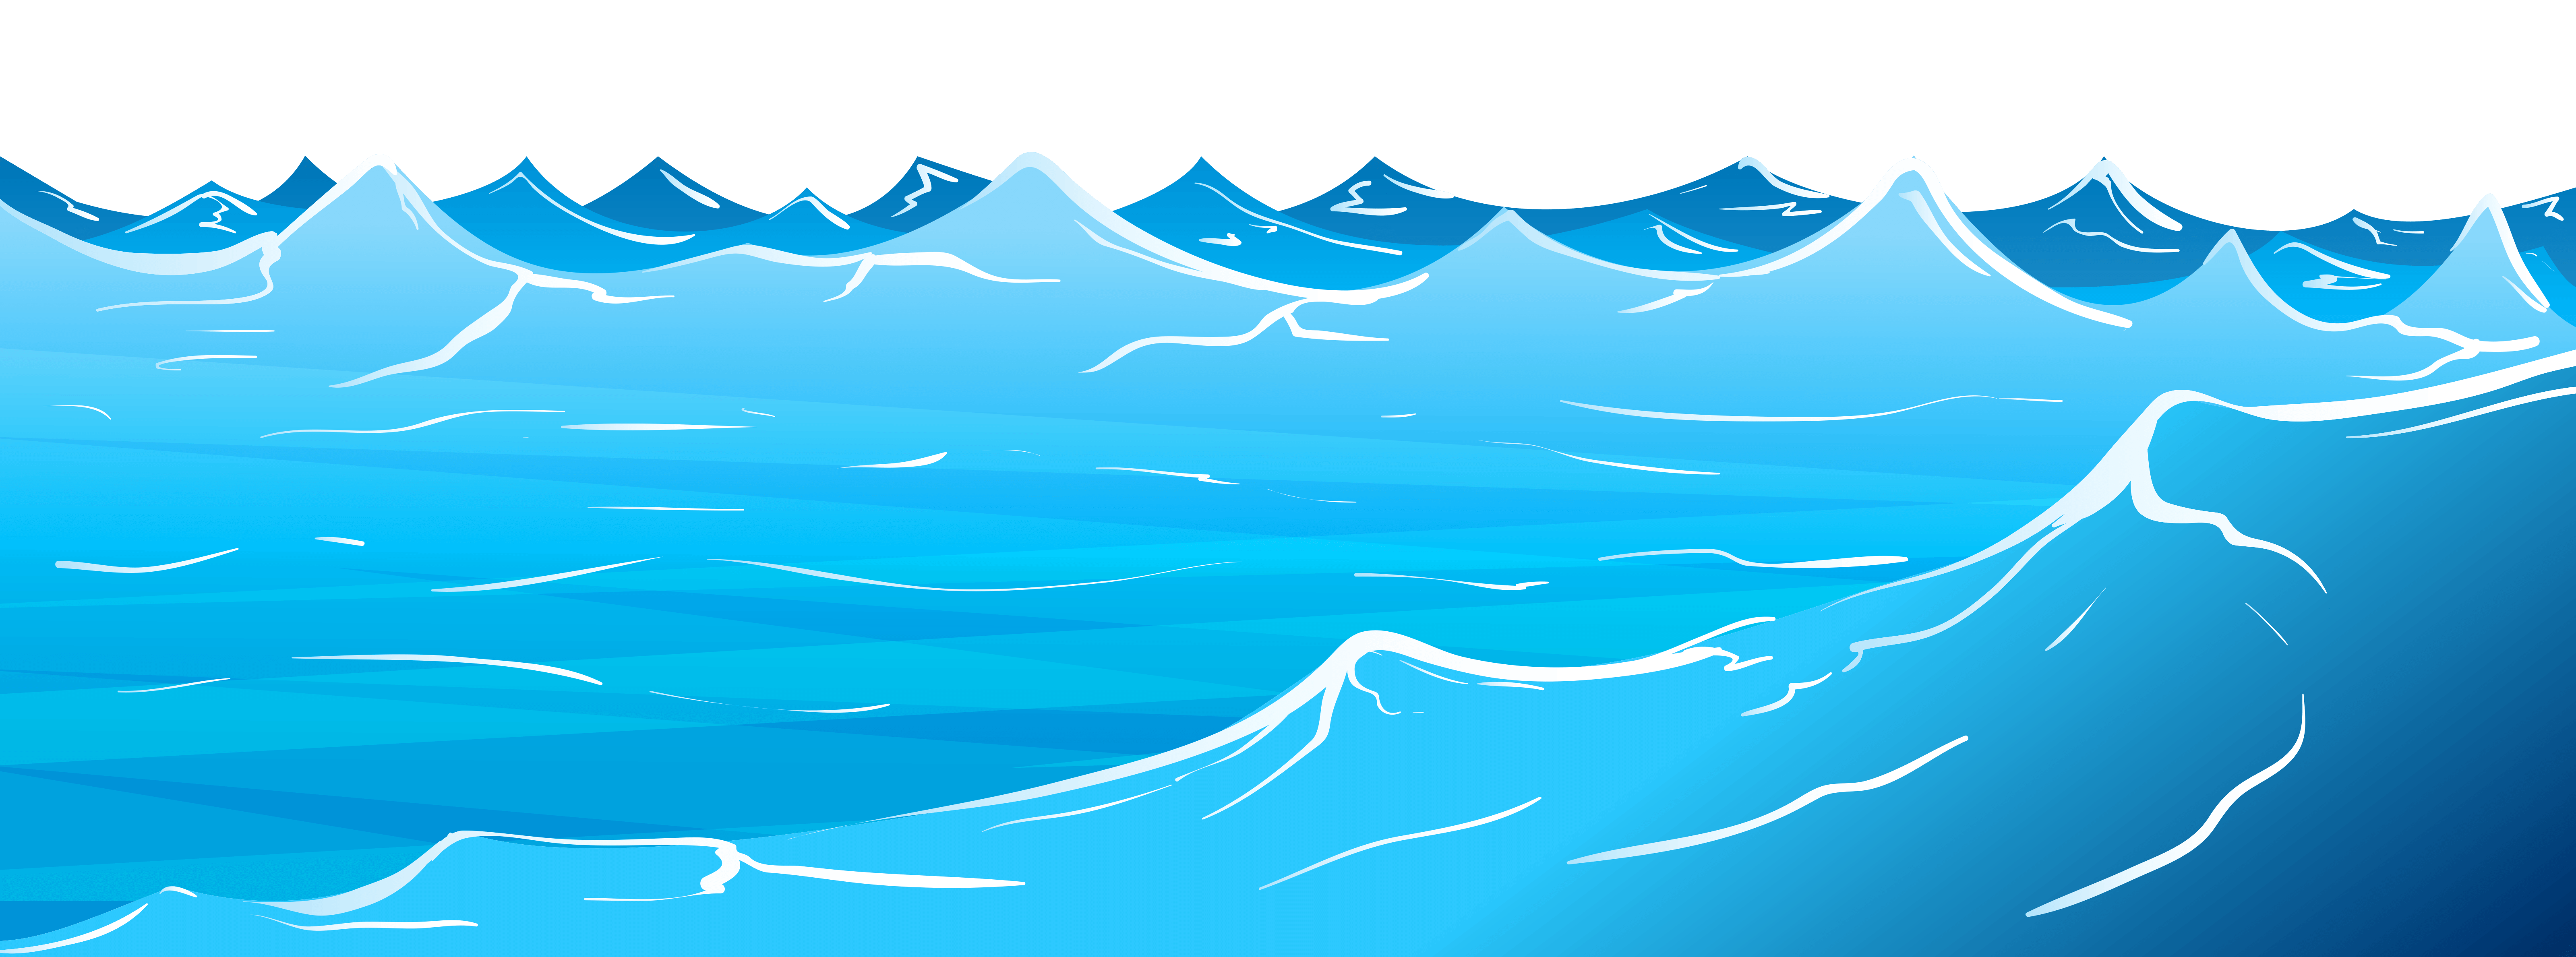 Waves clipart freshwater. Clear background frames illustrations